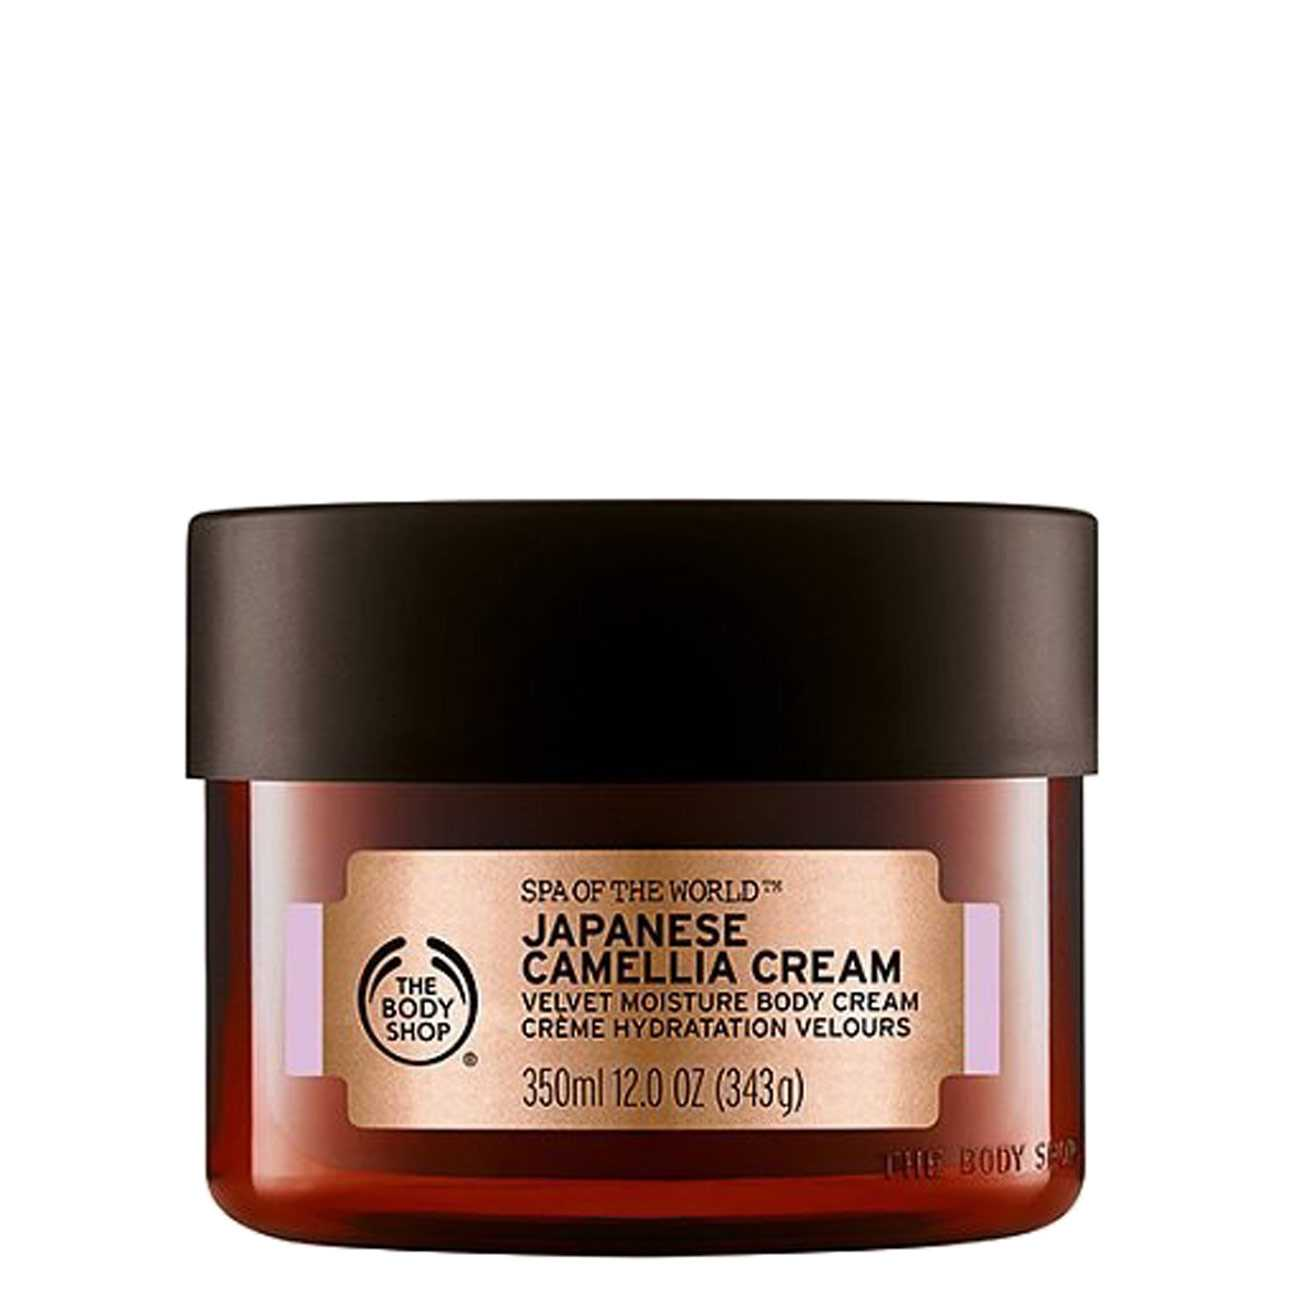 Japanese Camellia Cream 350 Ml The Body Shop imagine 2021 bestvalue.eu